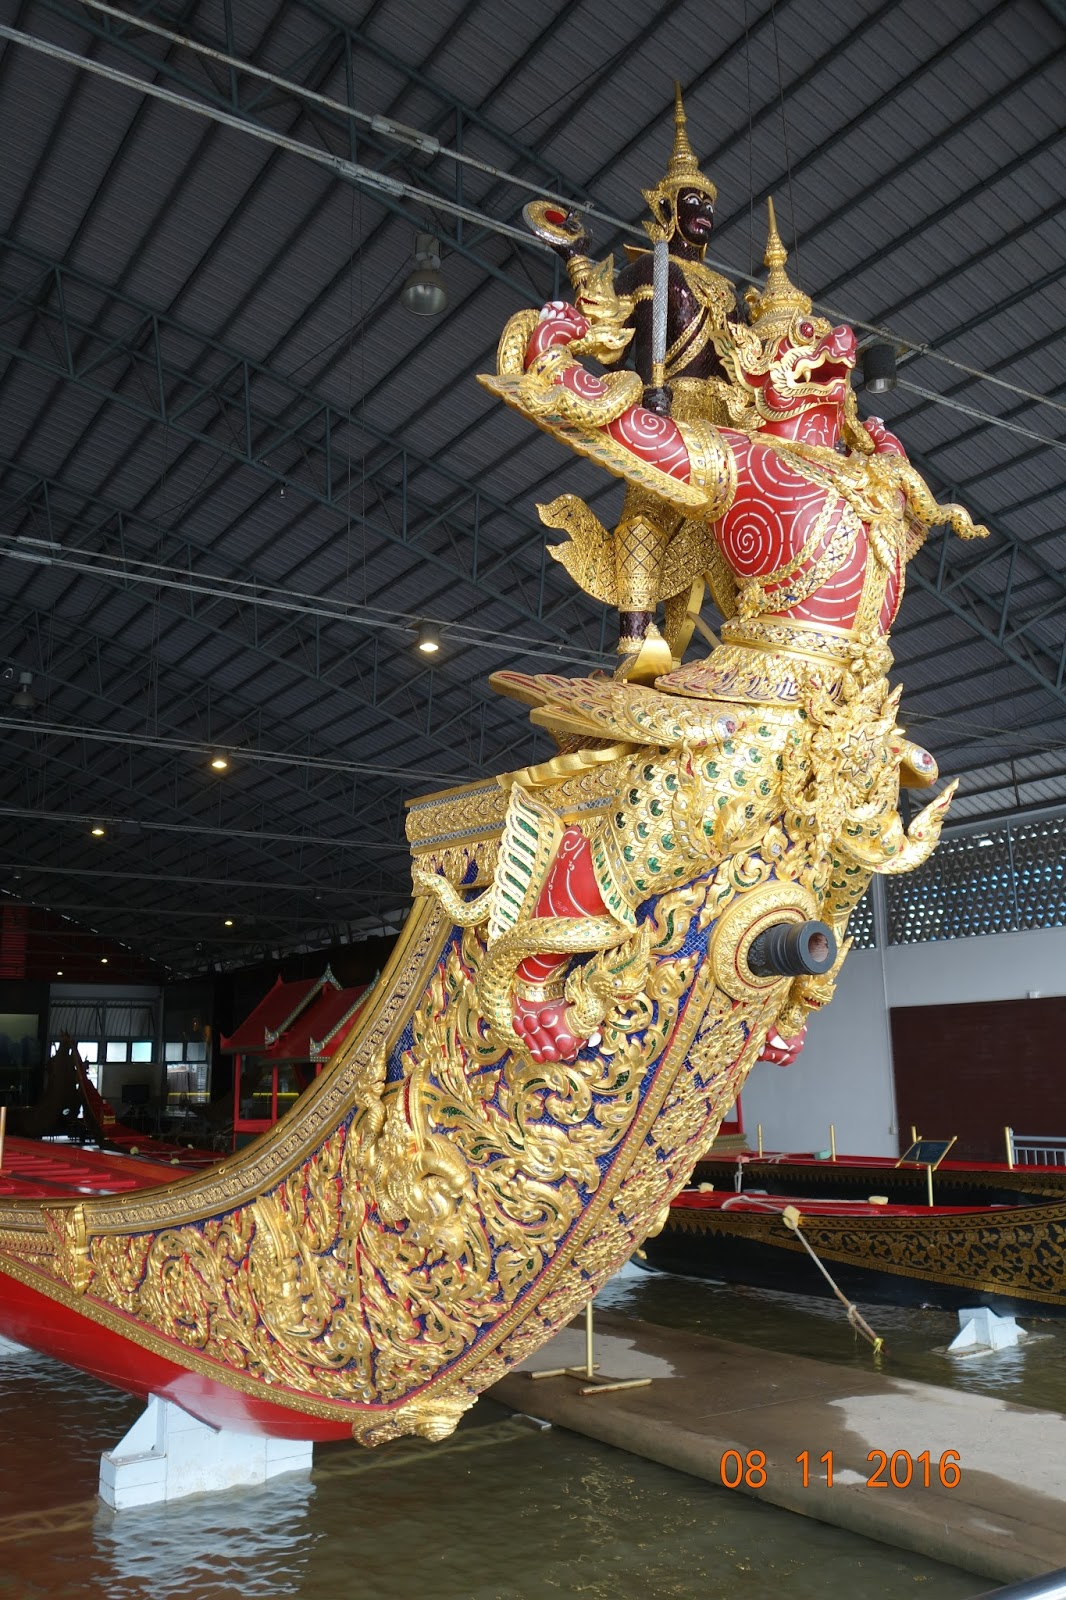 ChristianPFC - Adventures in Thailand: Royal Barges Museum